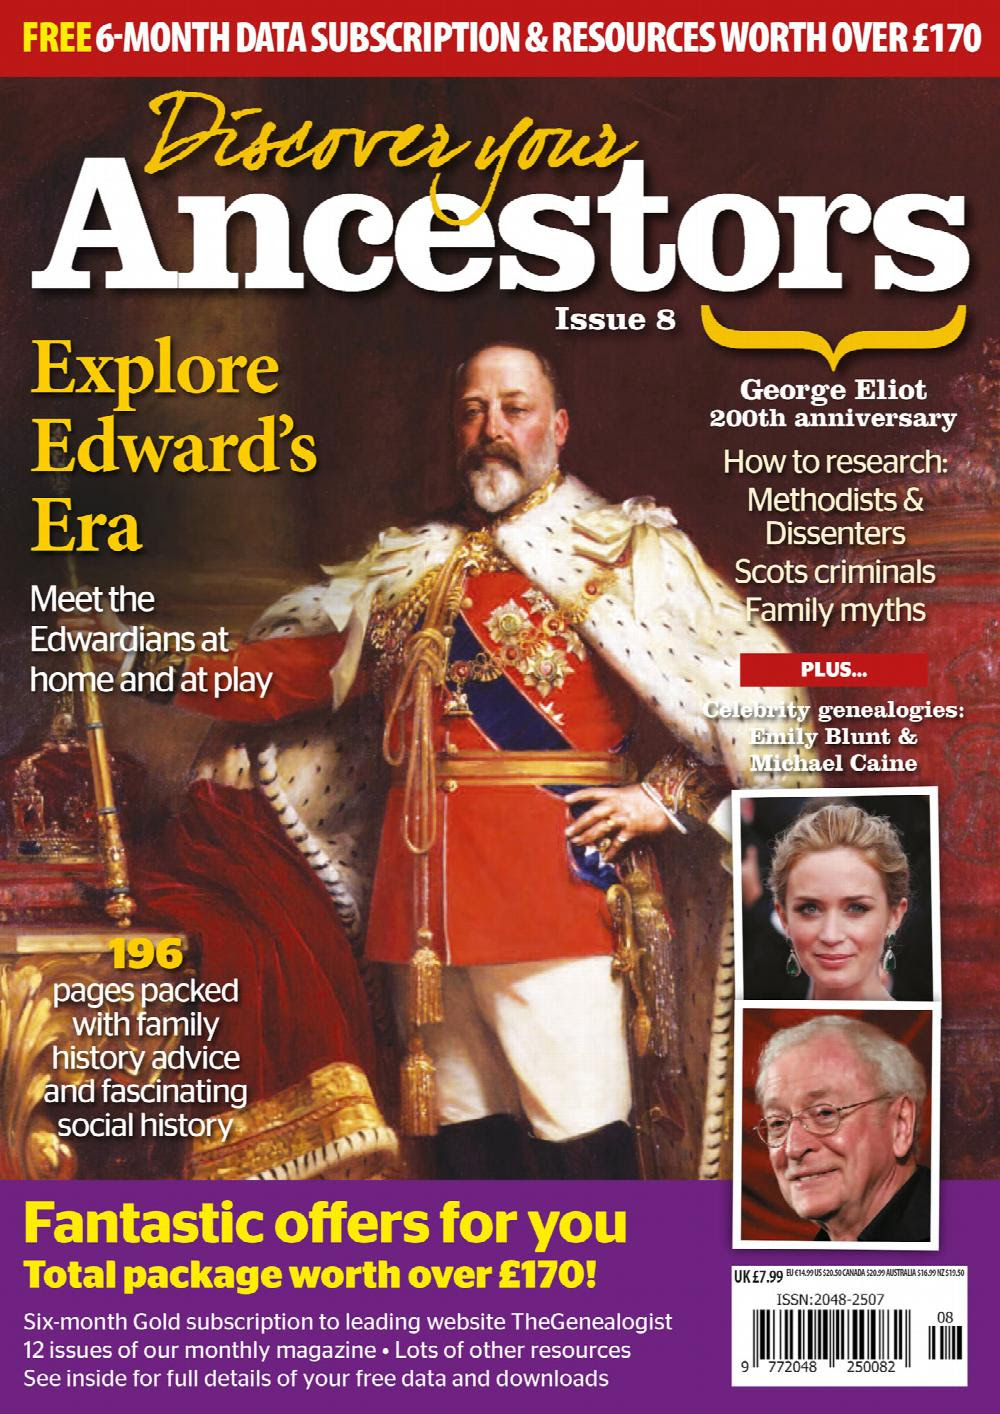 Discover Your Ancestors Issue 8